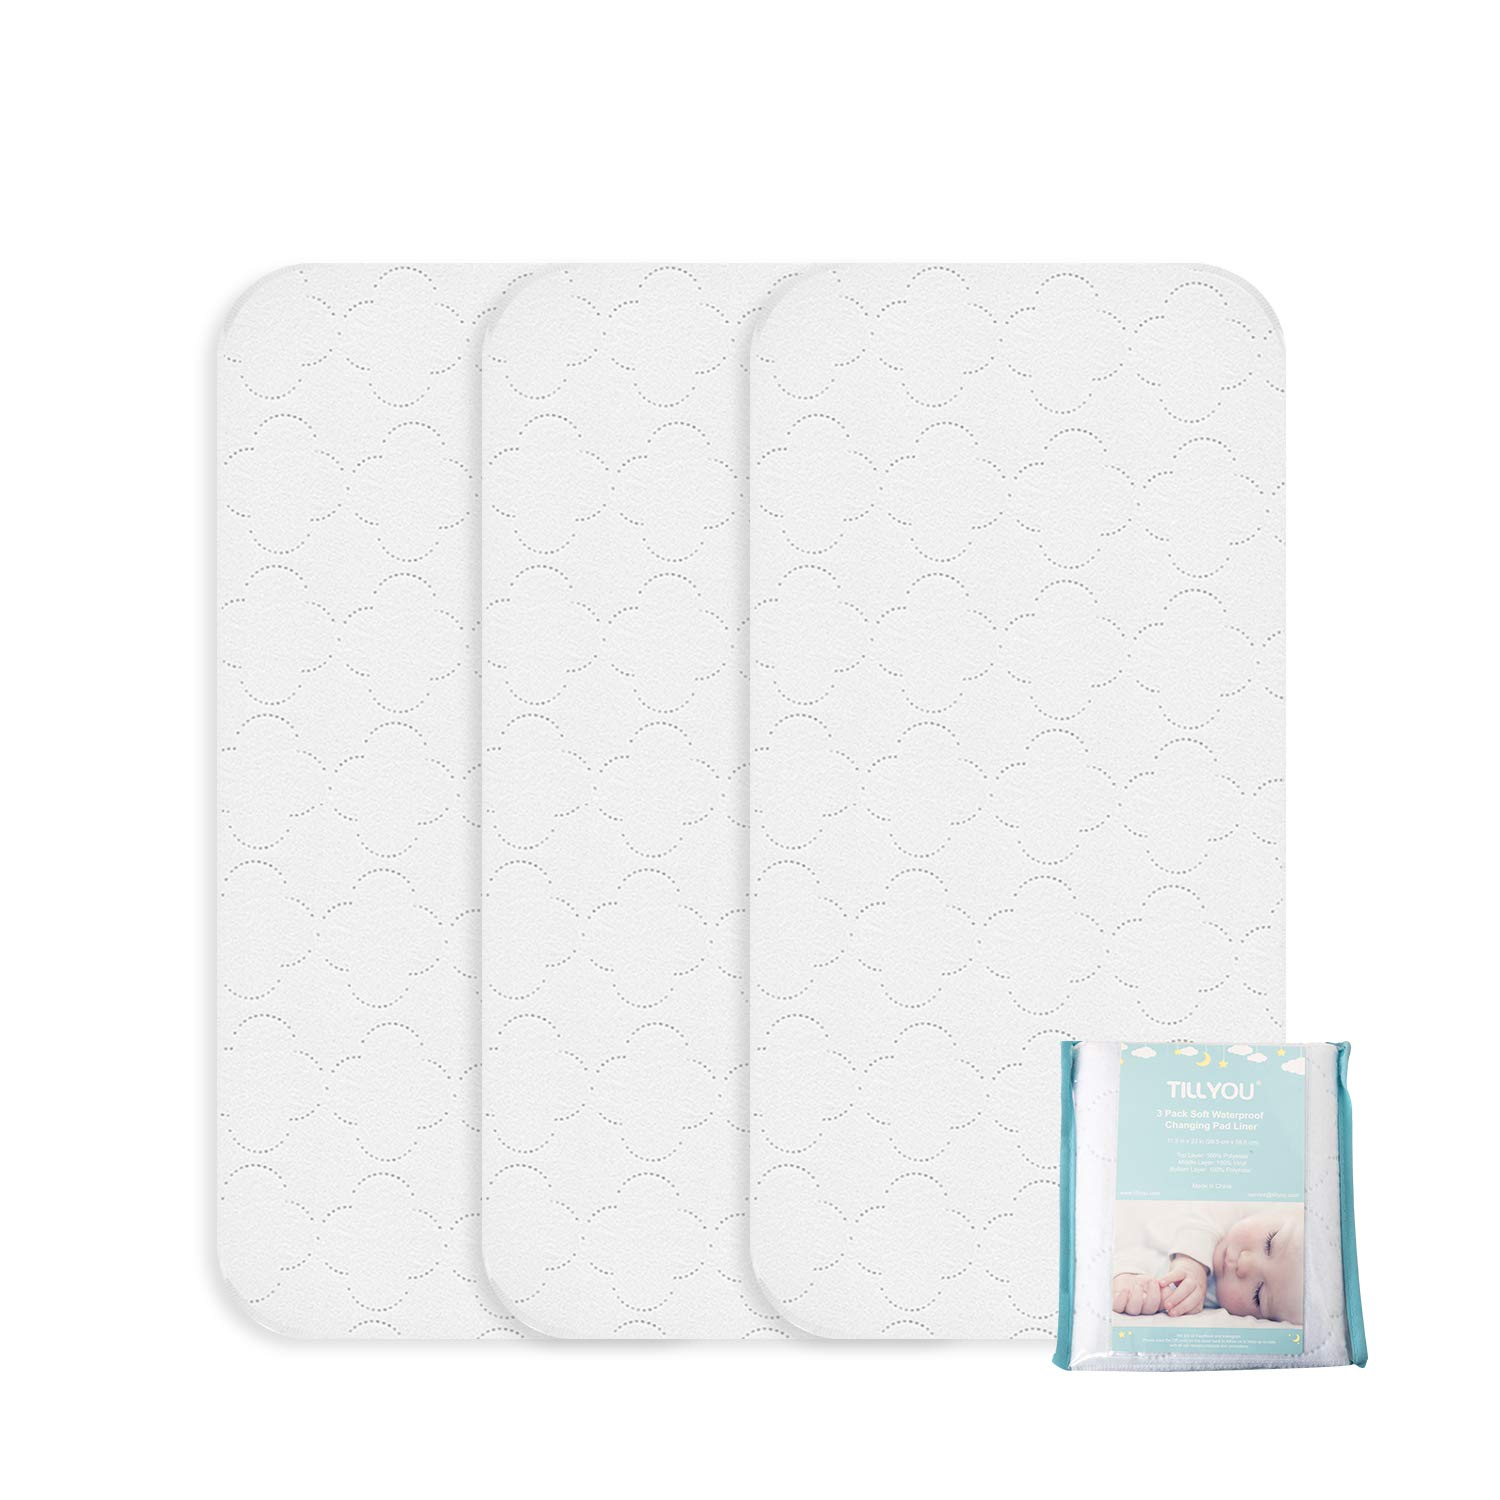 TILLYOU Quilted Thick Changing Pad Liners Waterproof, Ultra Soft Breathable Changing Table Cover Liners, 11.5' X 23' Washable Reusable Changing Mats Sheet Protector, 3 Pack 11.5 X 23 Washable Reusable Changing Mats Sheet Protector Smile Textile